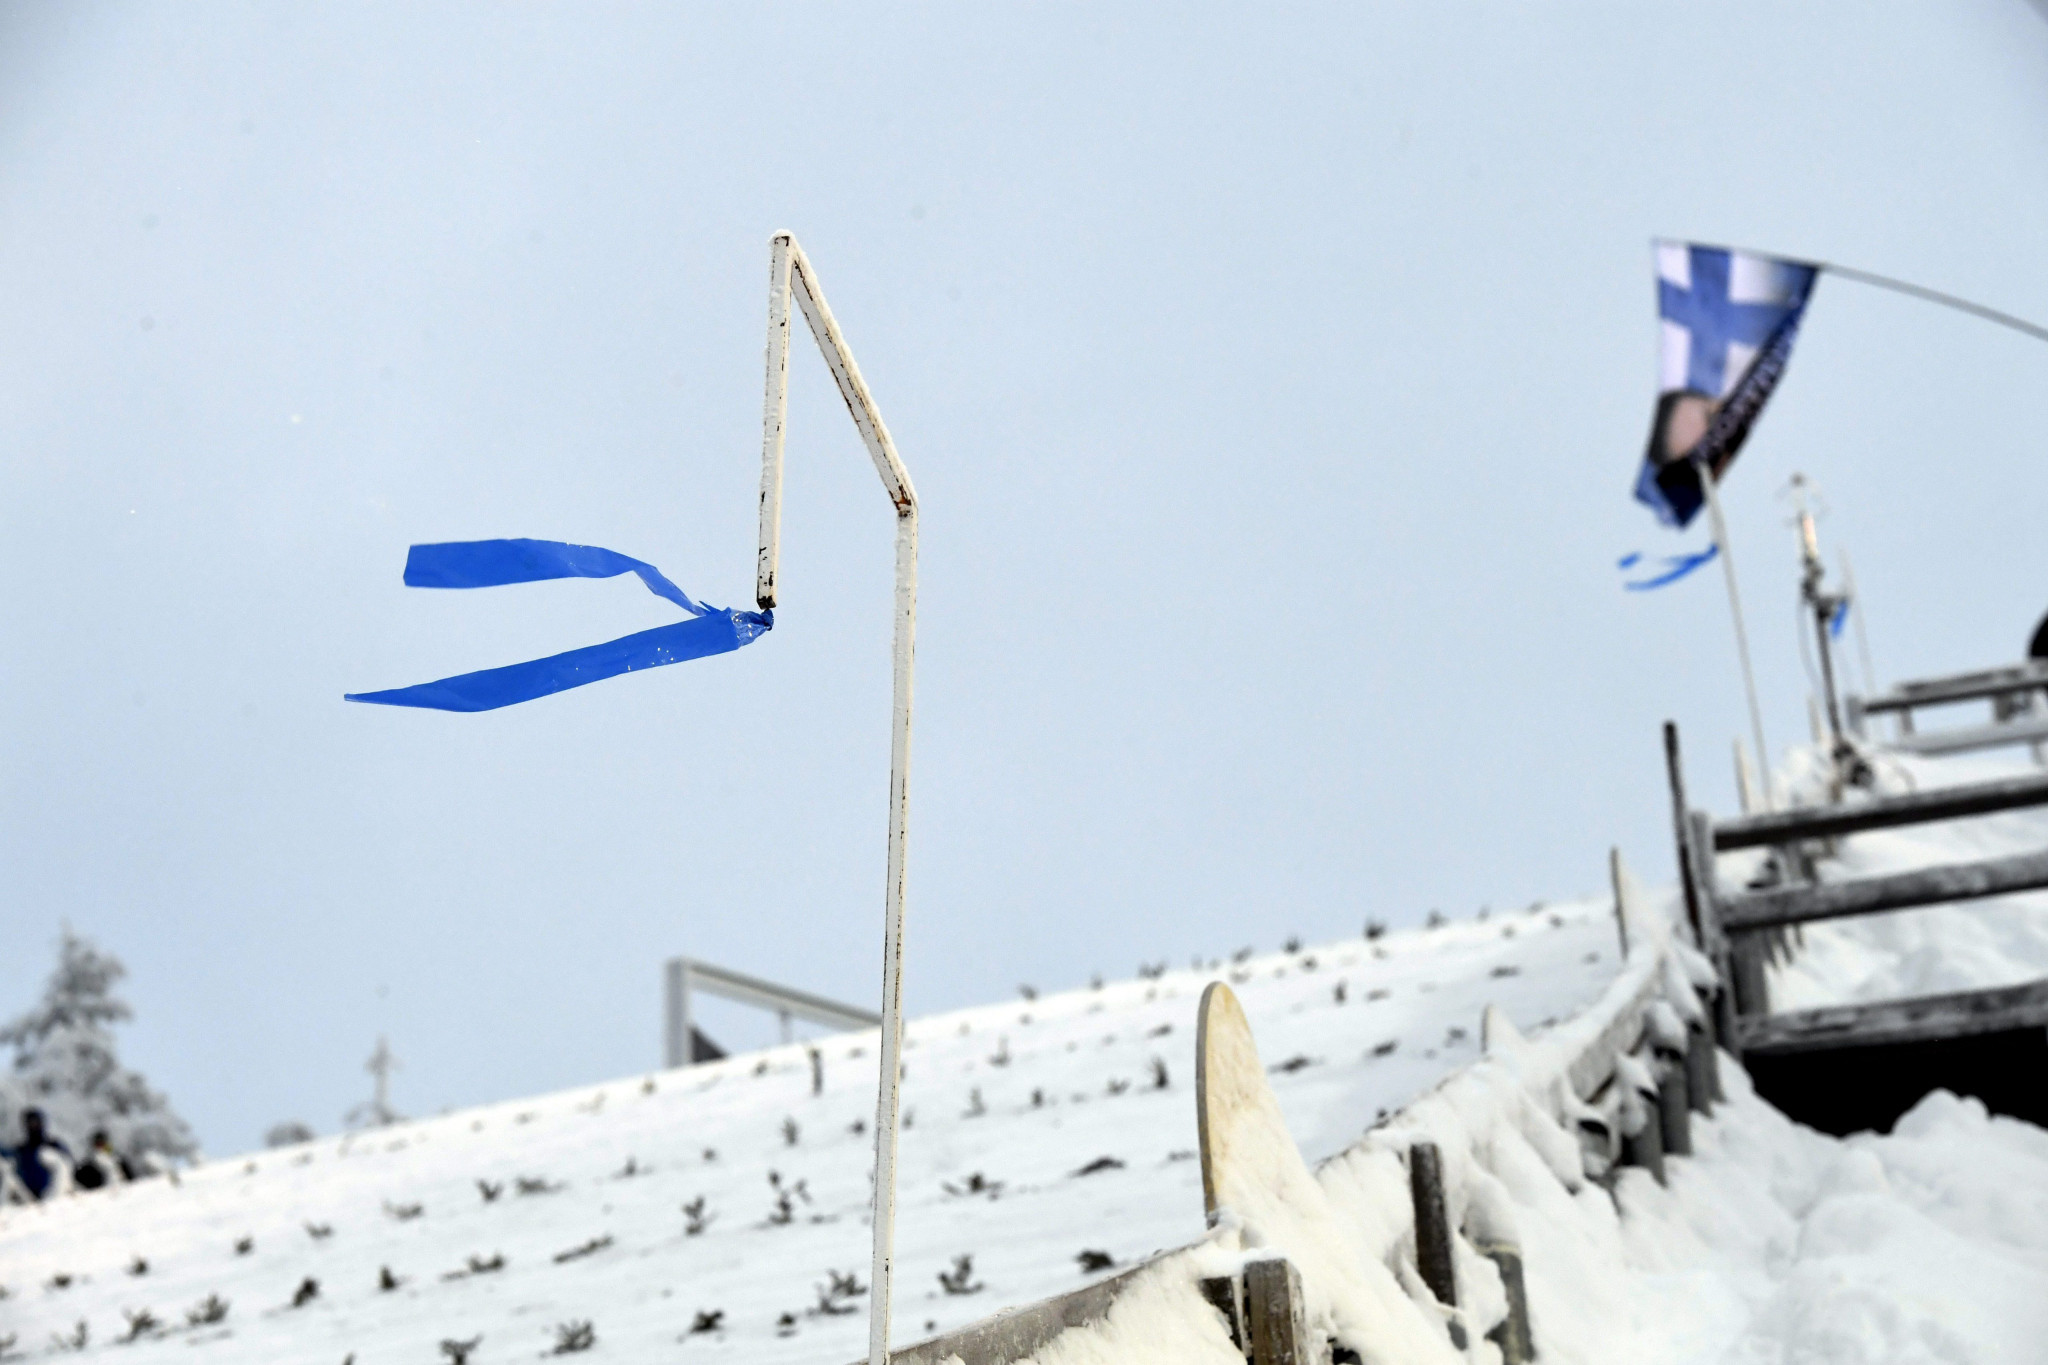 Strong winds led to the cancellation of the FIS Ski Jumping World Cup in Ruka  ©Getty Images